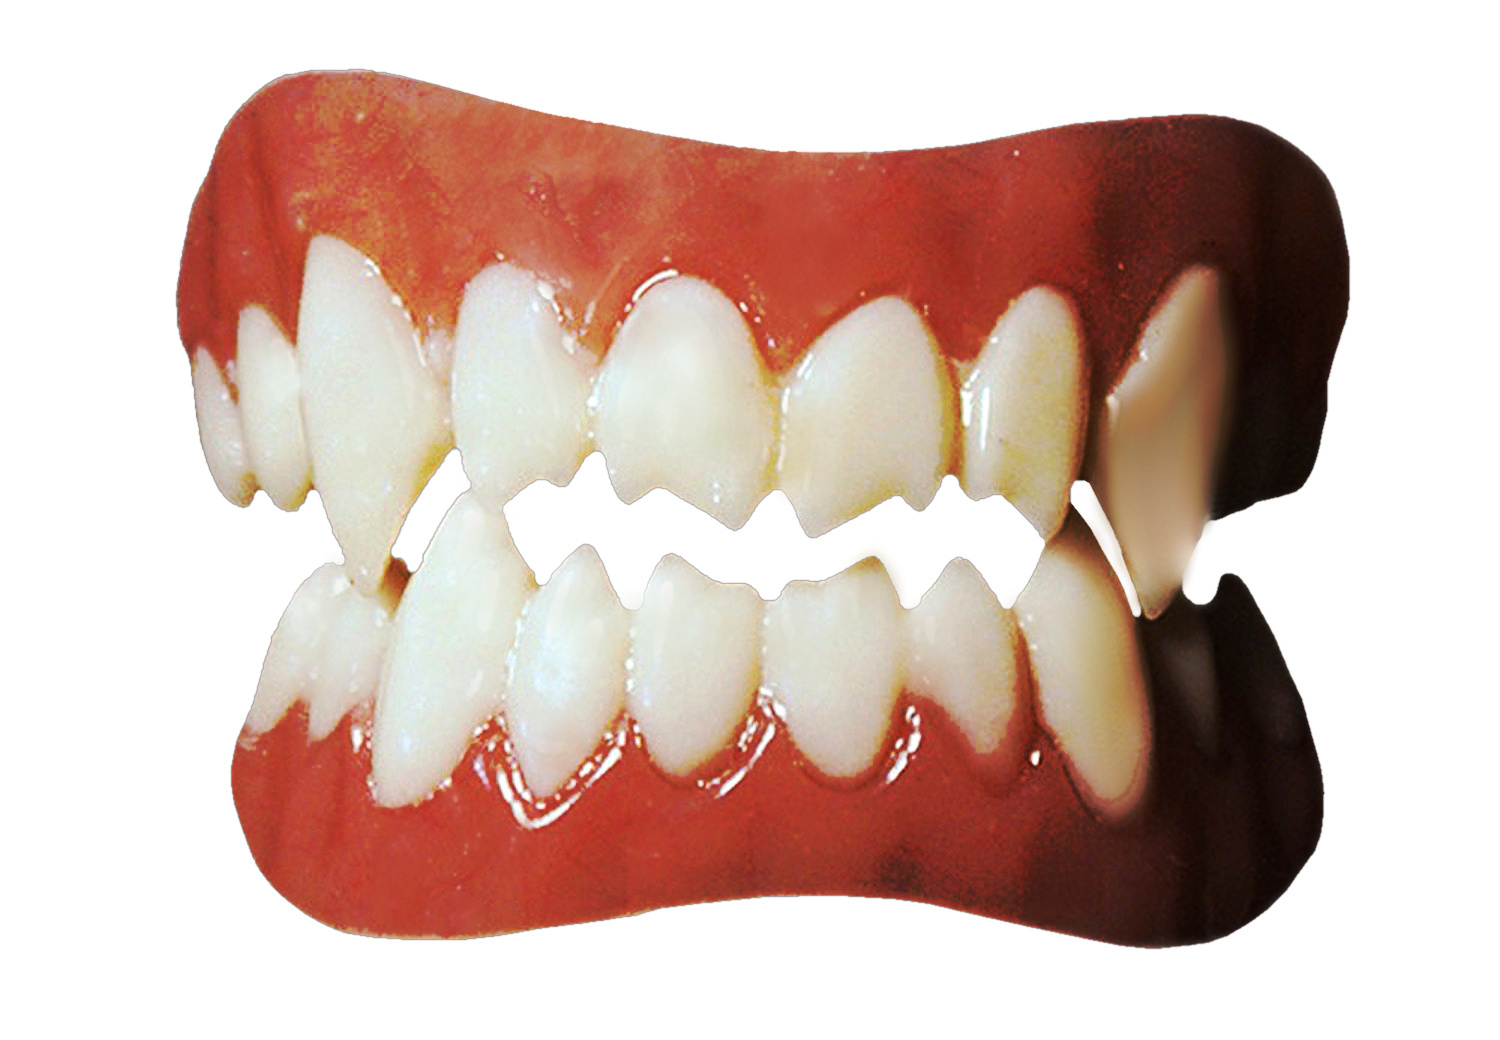 Vampire Fangs (Upper and Lower)